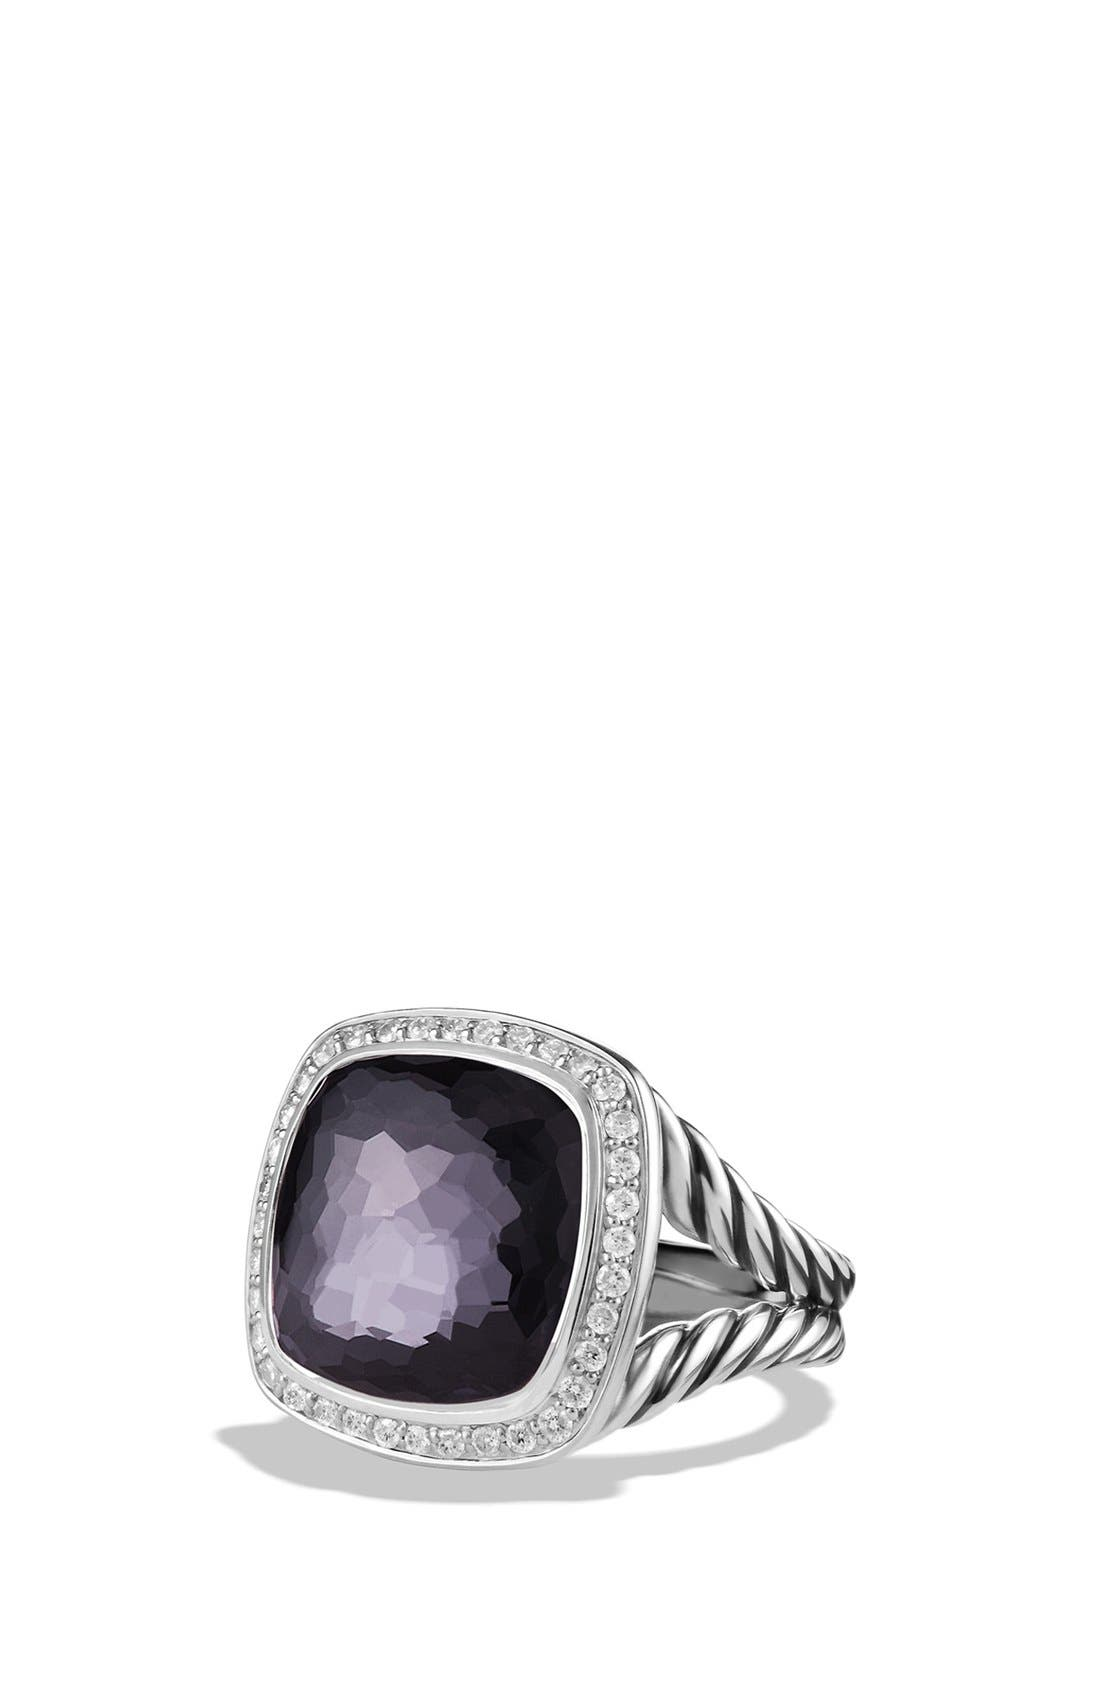 'Albion' Ring with Semiprecious Stone and Diamonds,                         Main,                         color, Amethyst/ Hematine